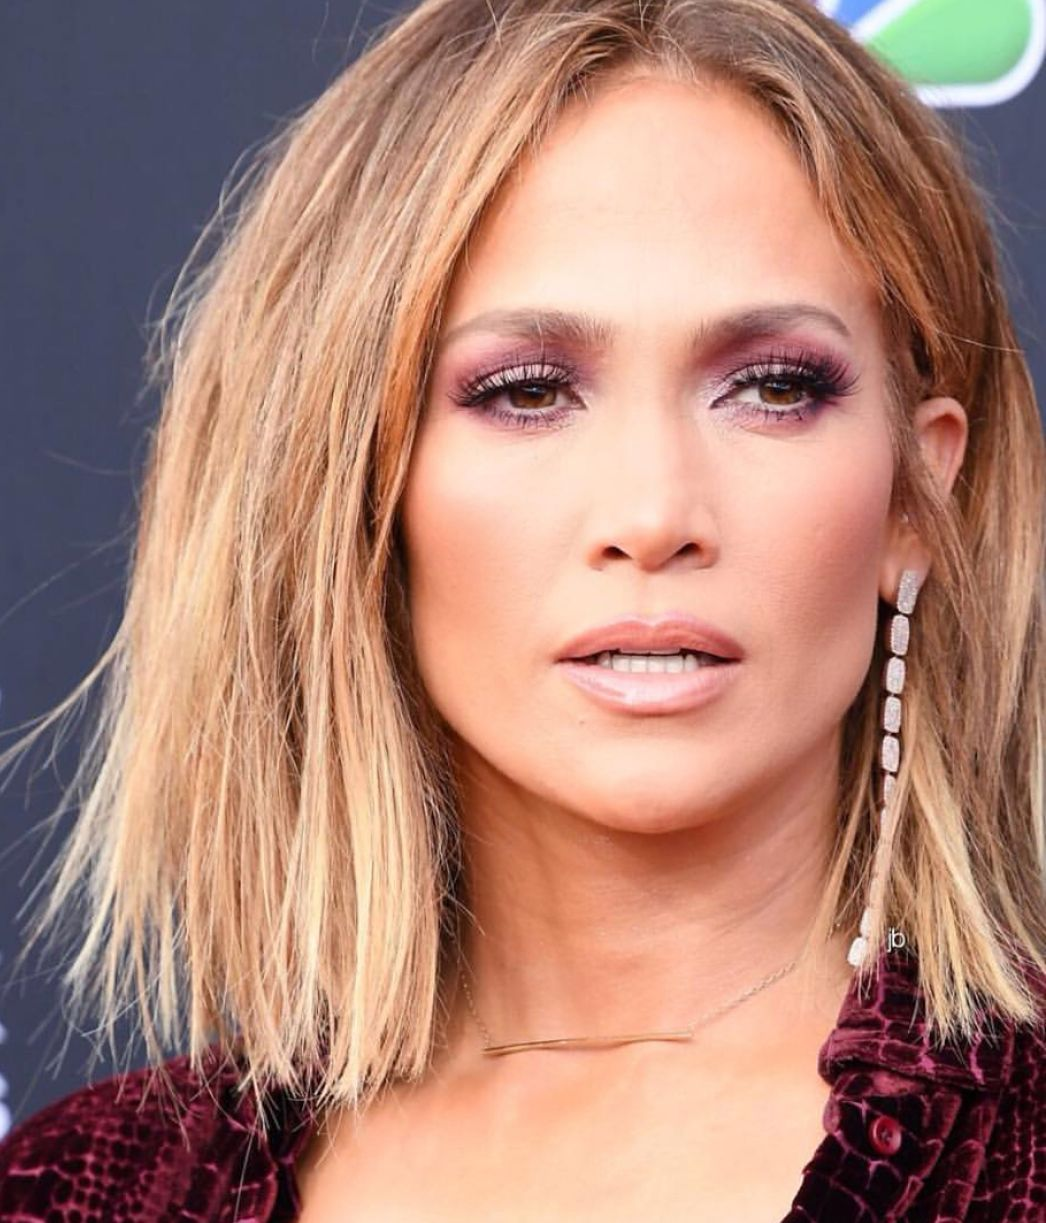 cb7bea7ecc95 Jennifer Lopez at the Billboard Awards with bob short hair cut and messy  strands hair style  JLO  jenniferlopez